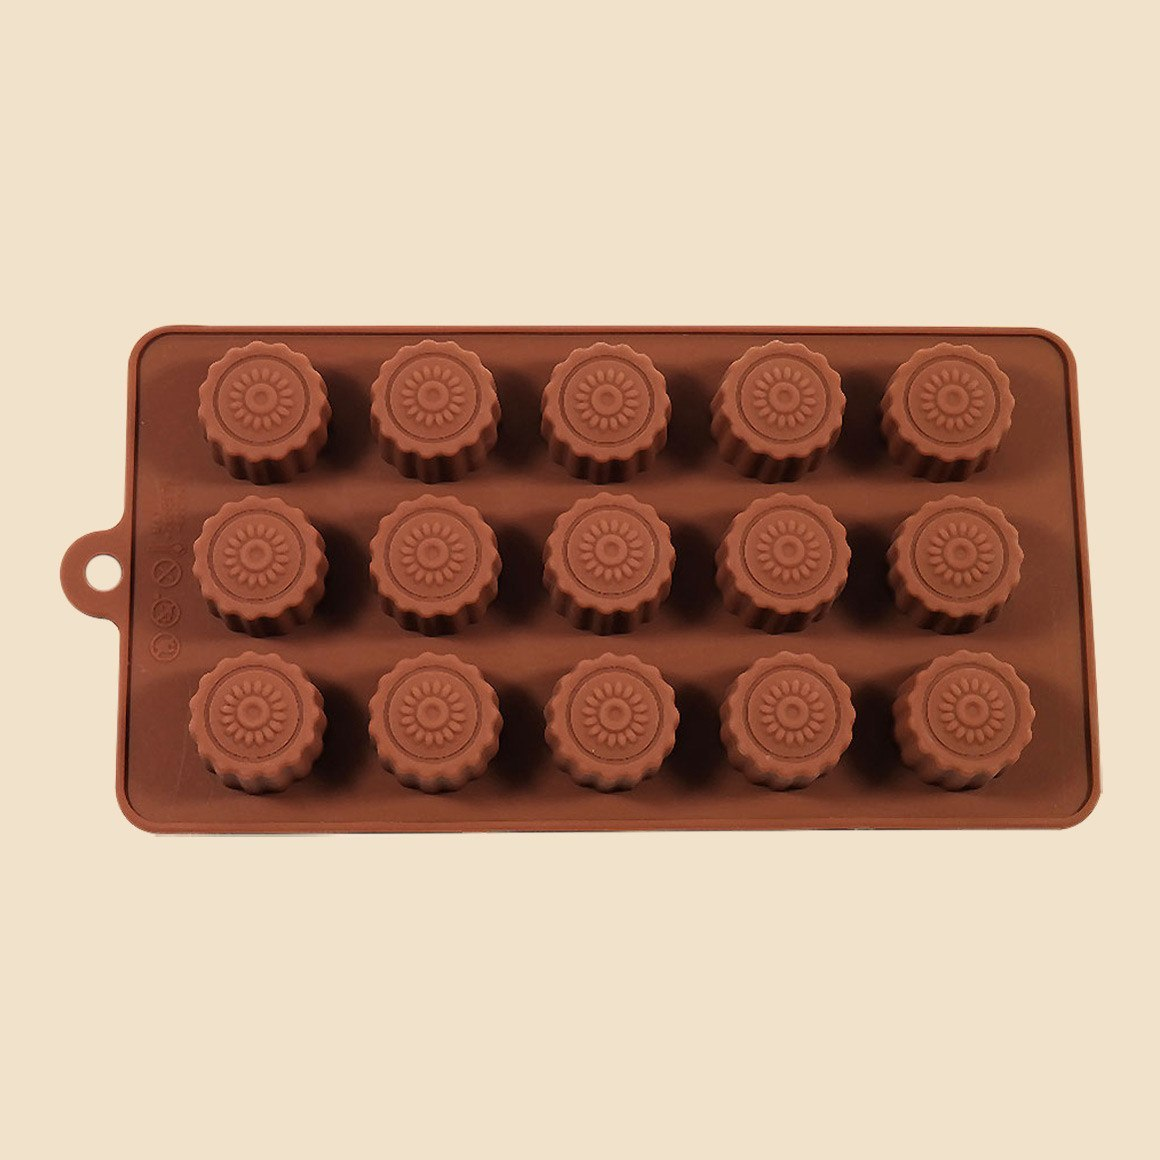 Caramel Cups Chocolate Mould